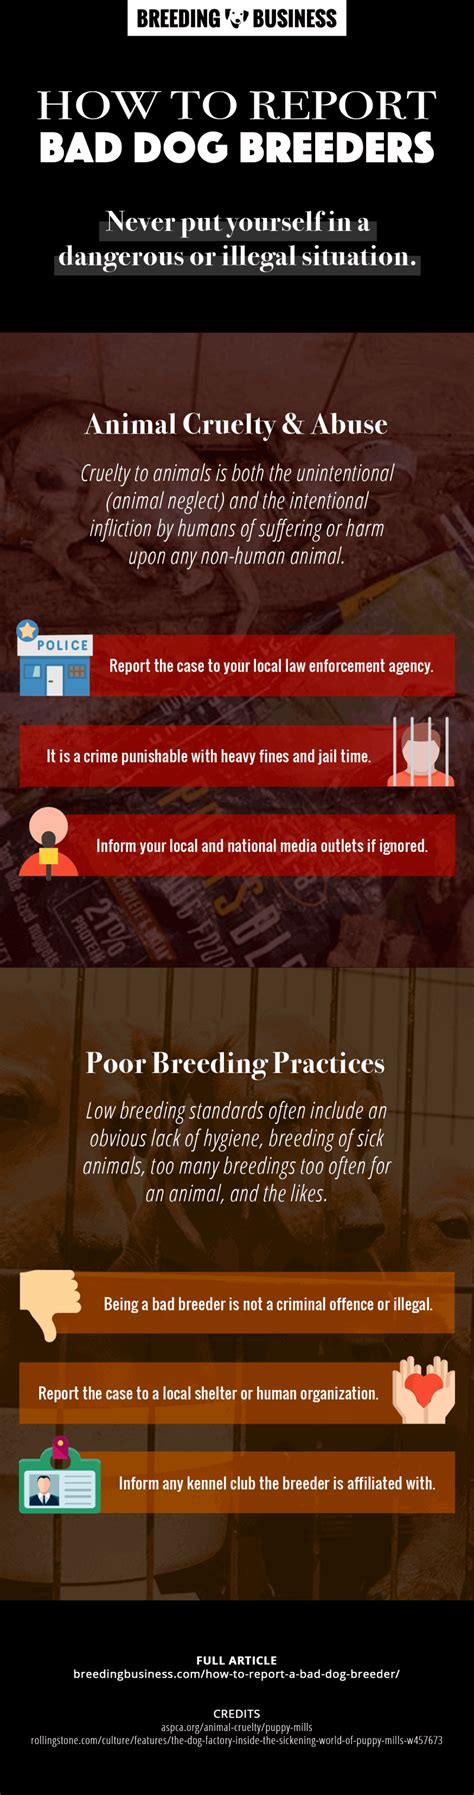 how to bad dogs how to report a bad breeder animal cruelty poor practices